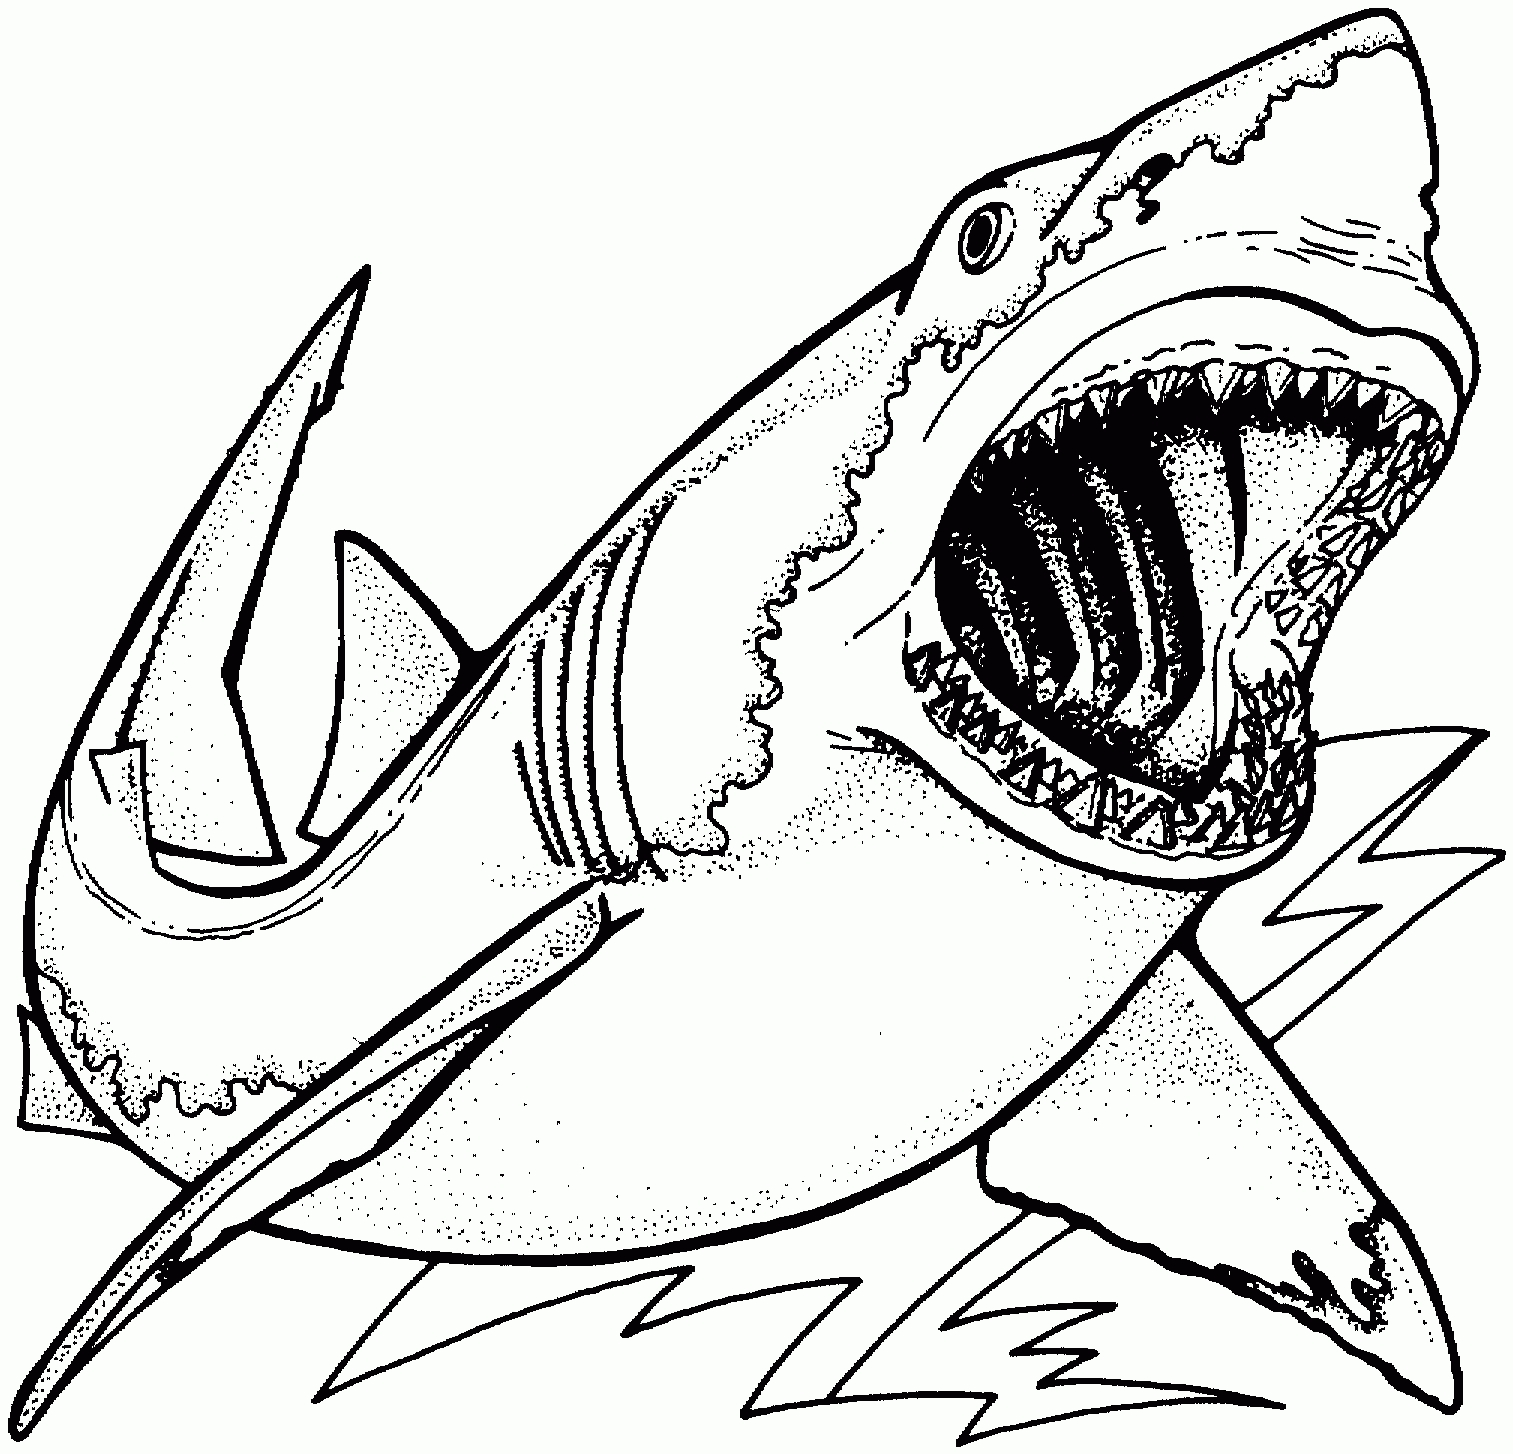 star wars coloring pages - coloring page of a shark tag hammerhead shark coloring pages to print kids coloring pages